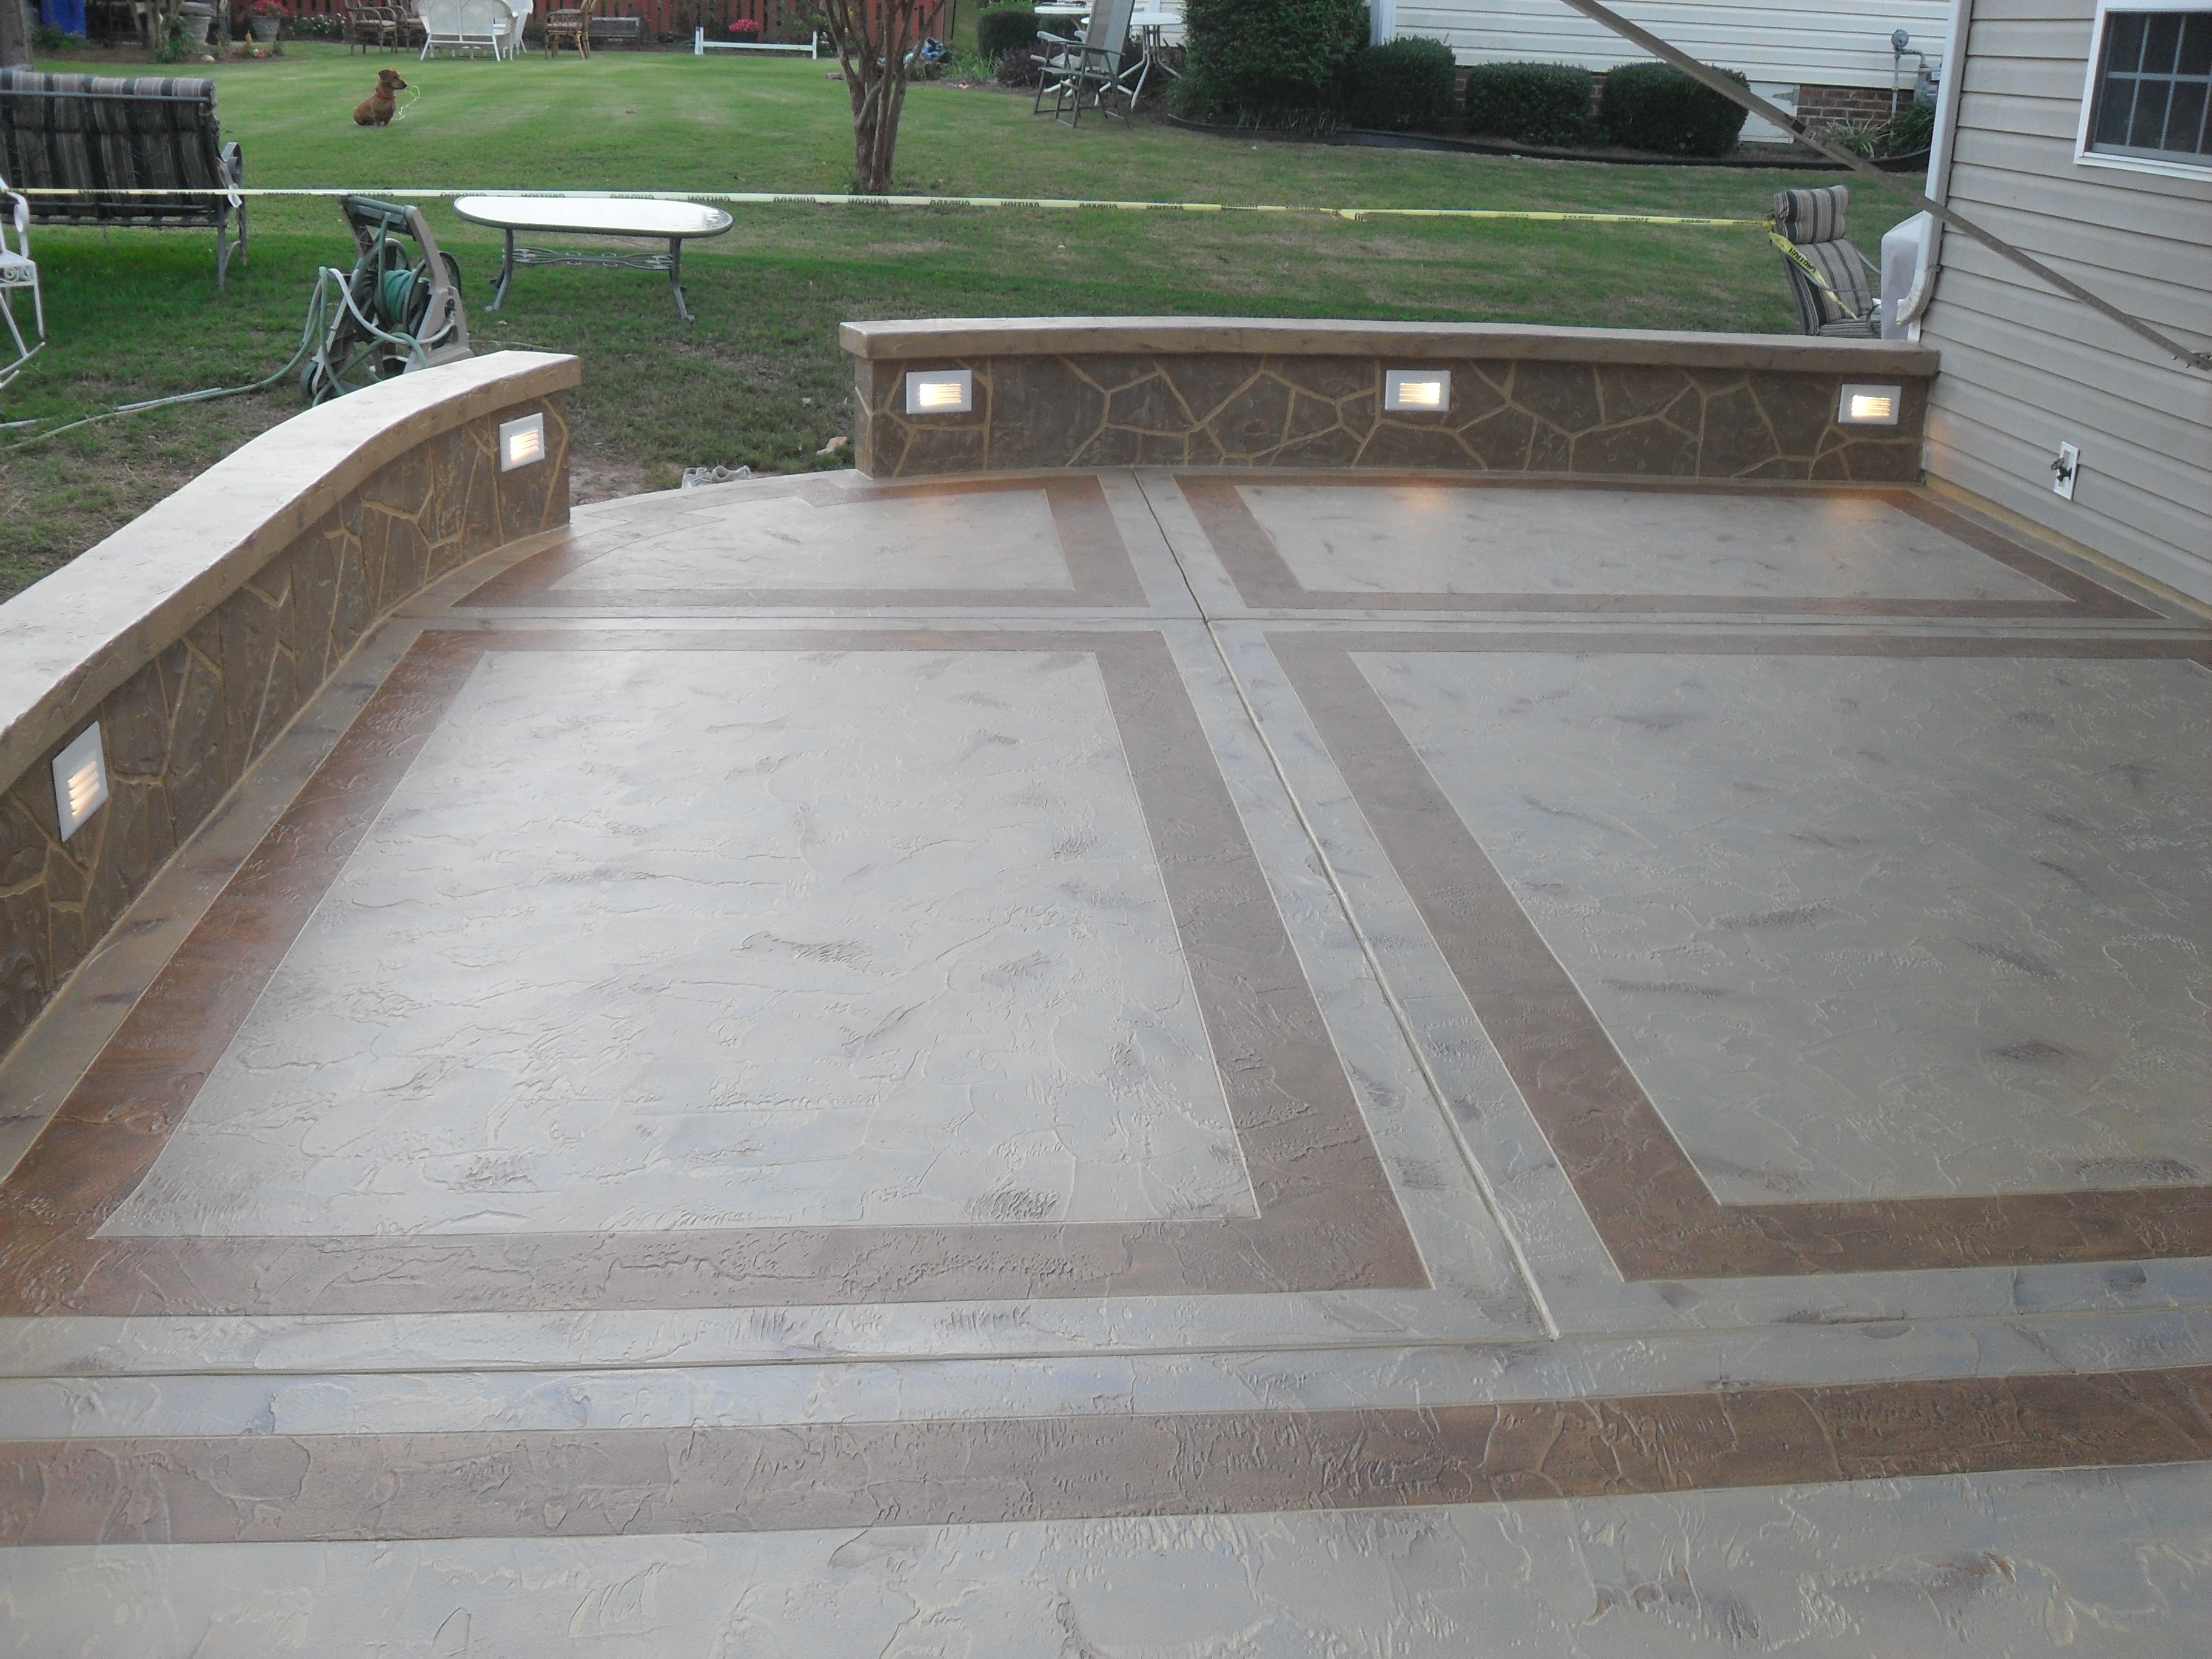 Concrete Patio Design Contractor, Ashburn Northern VA & DC ... on Backyard Masonry Ideas id=17326